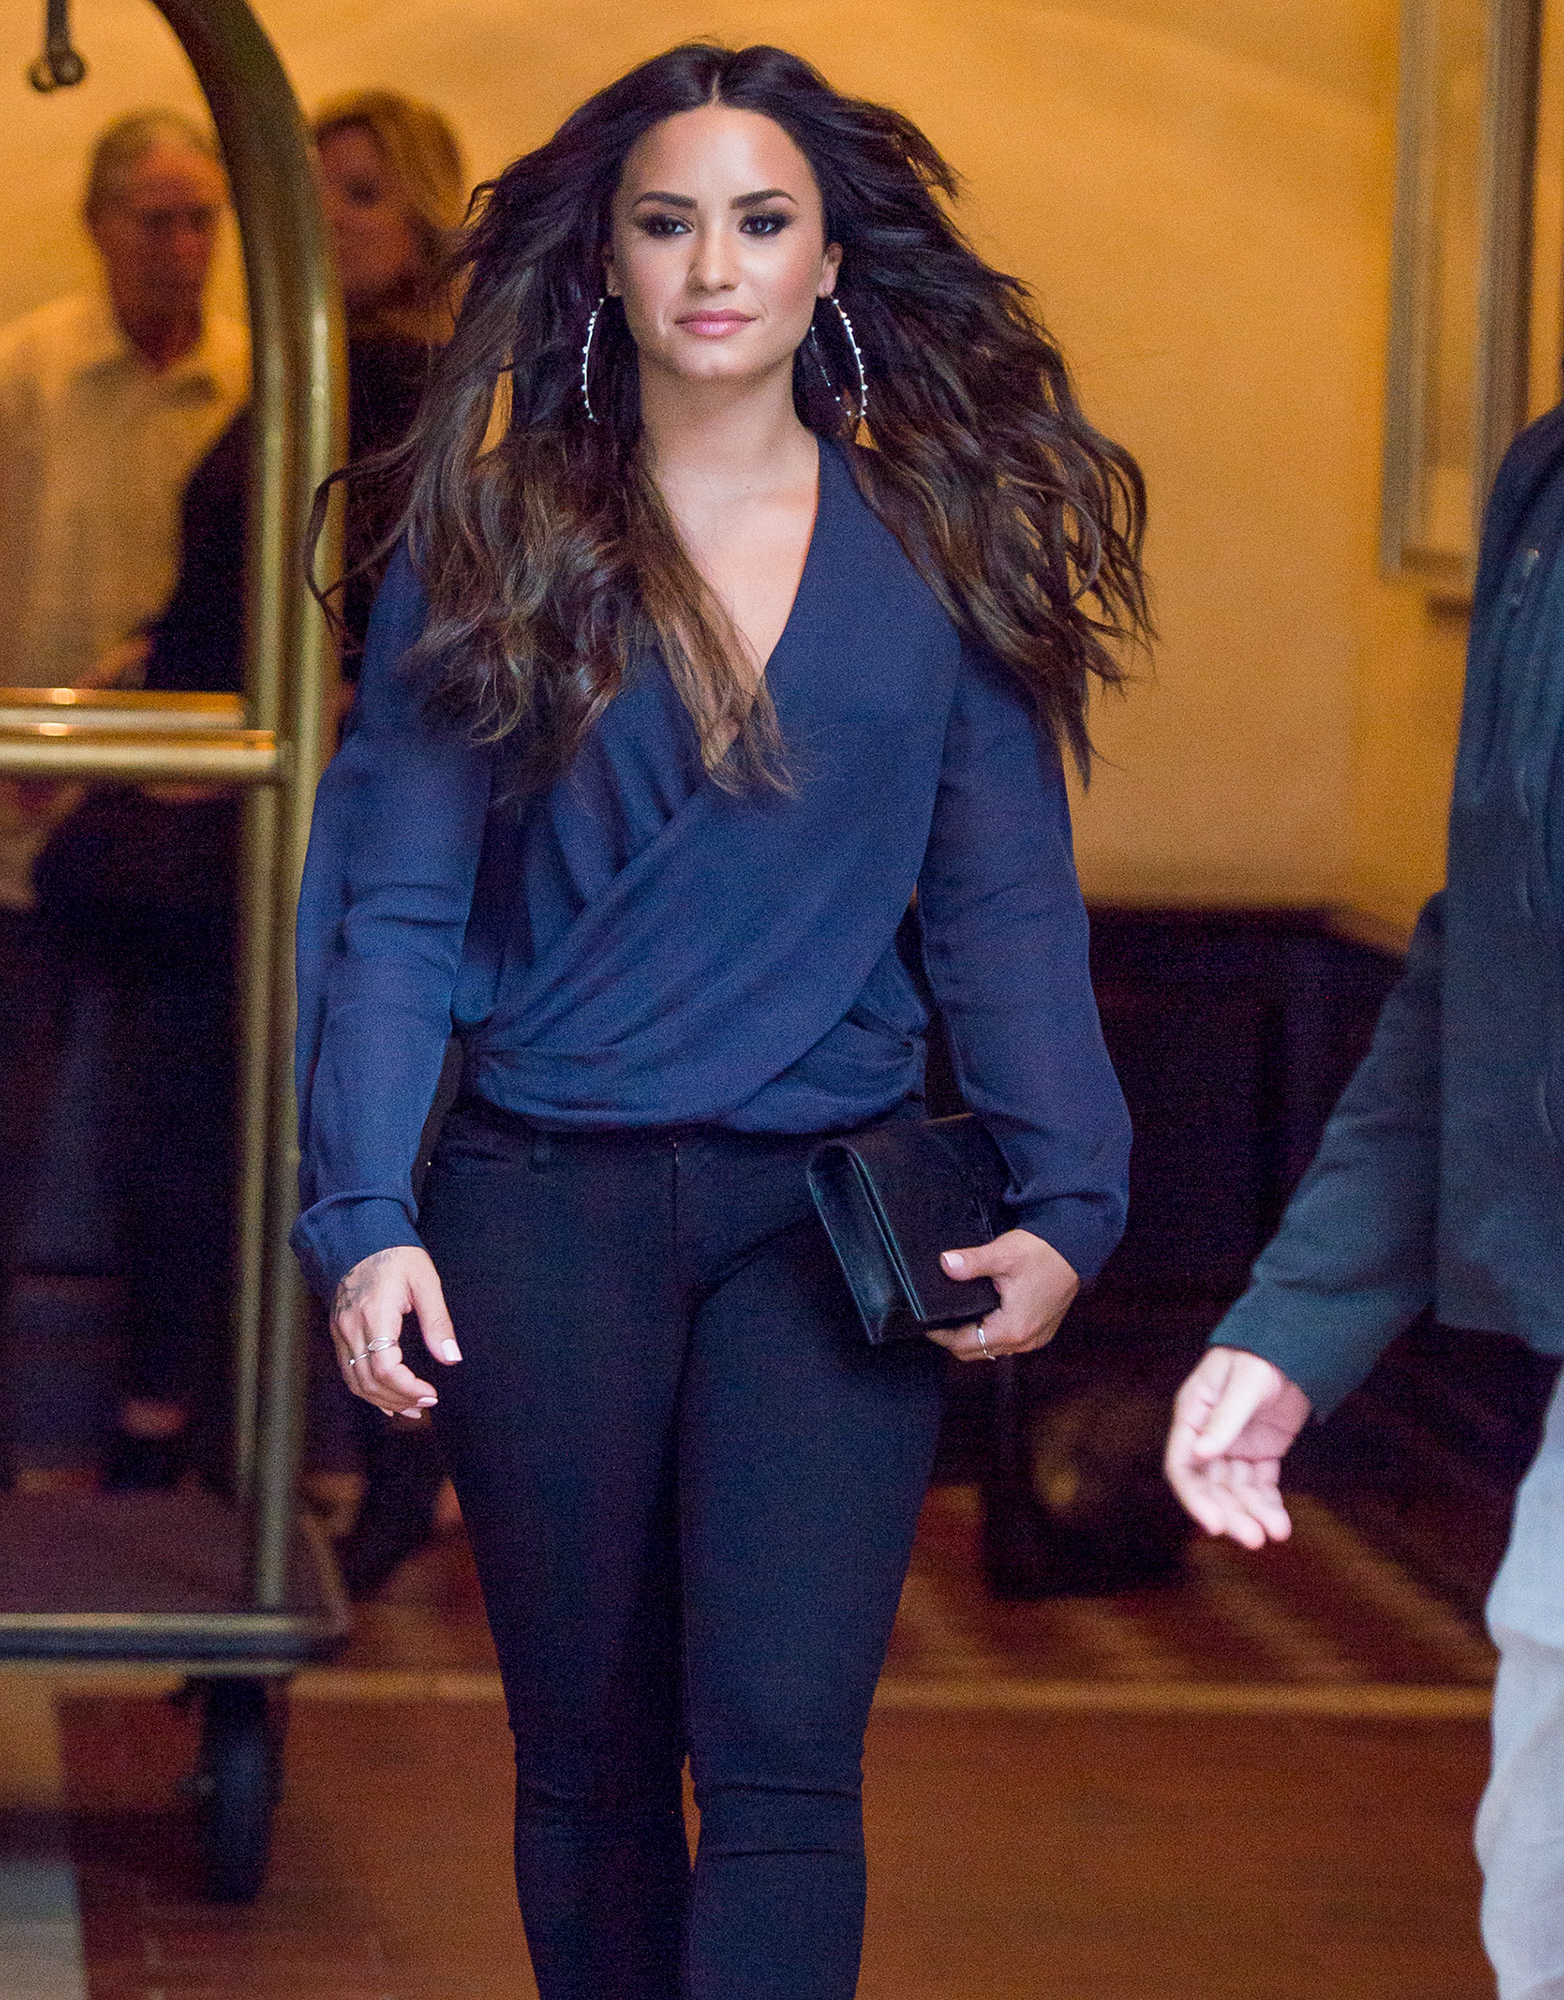 EXCLUSIVE: Demi Lovato seen wearing black & blue heading to the Kendrick Lamar concert in New York City